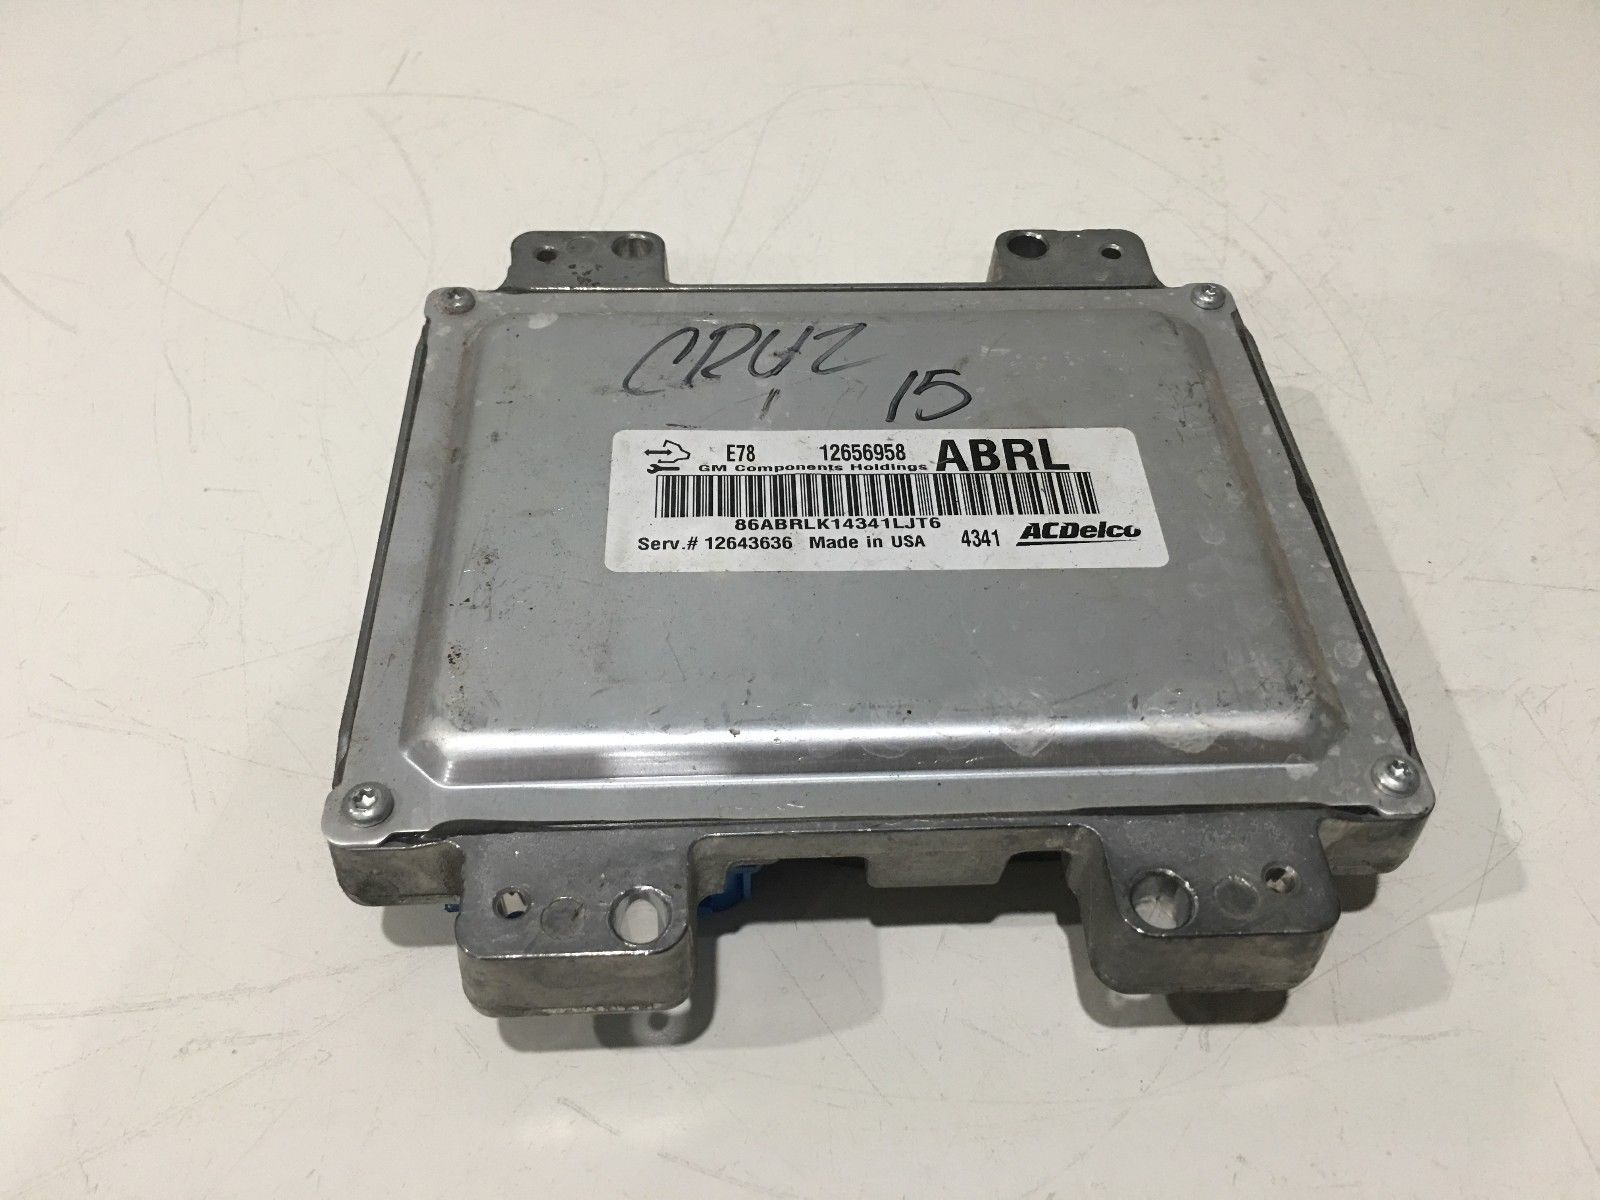 2012 Chevy Cruze Engine Computer Ecu Ecm